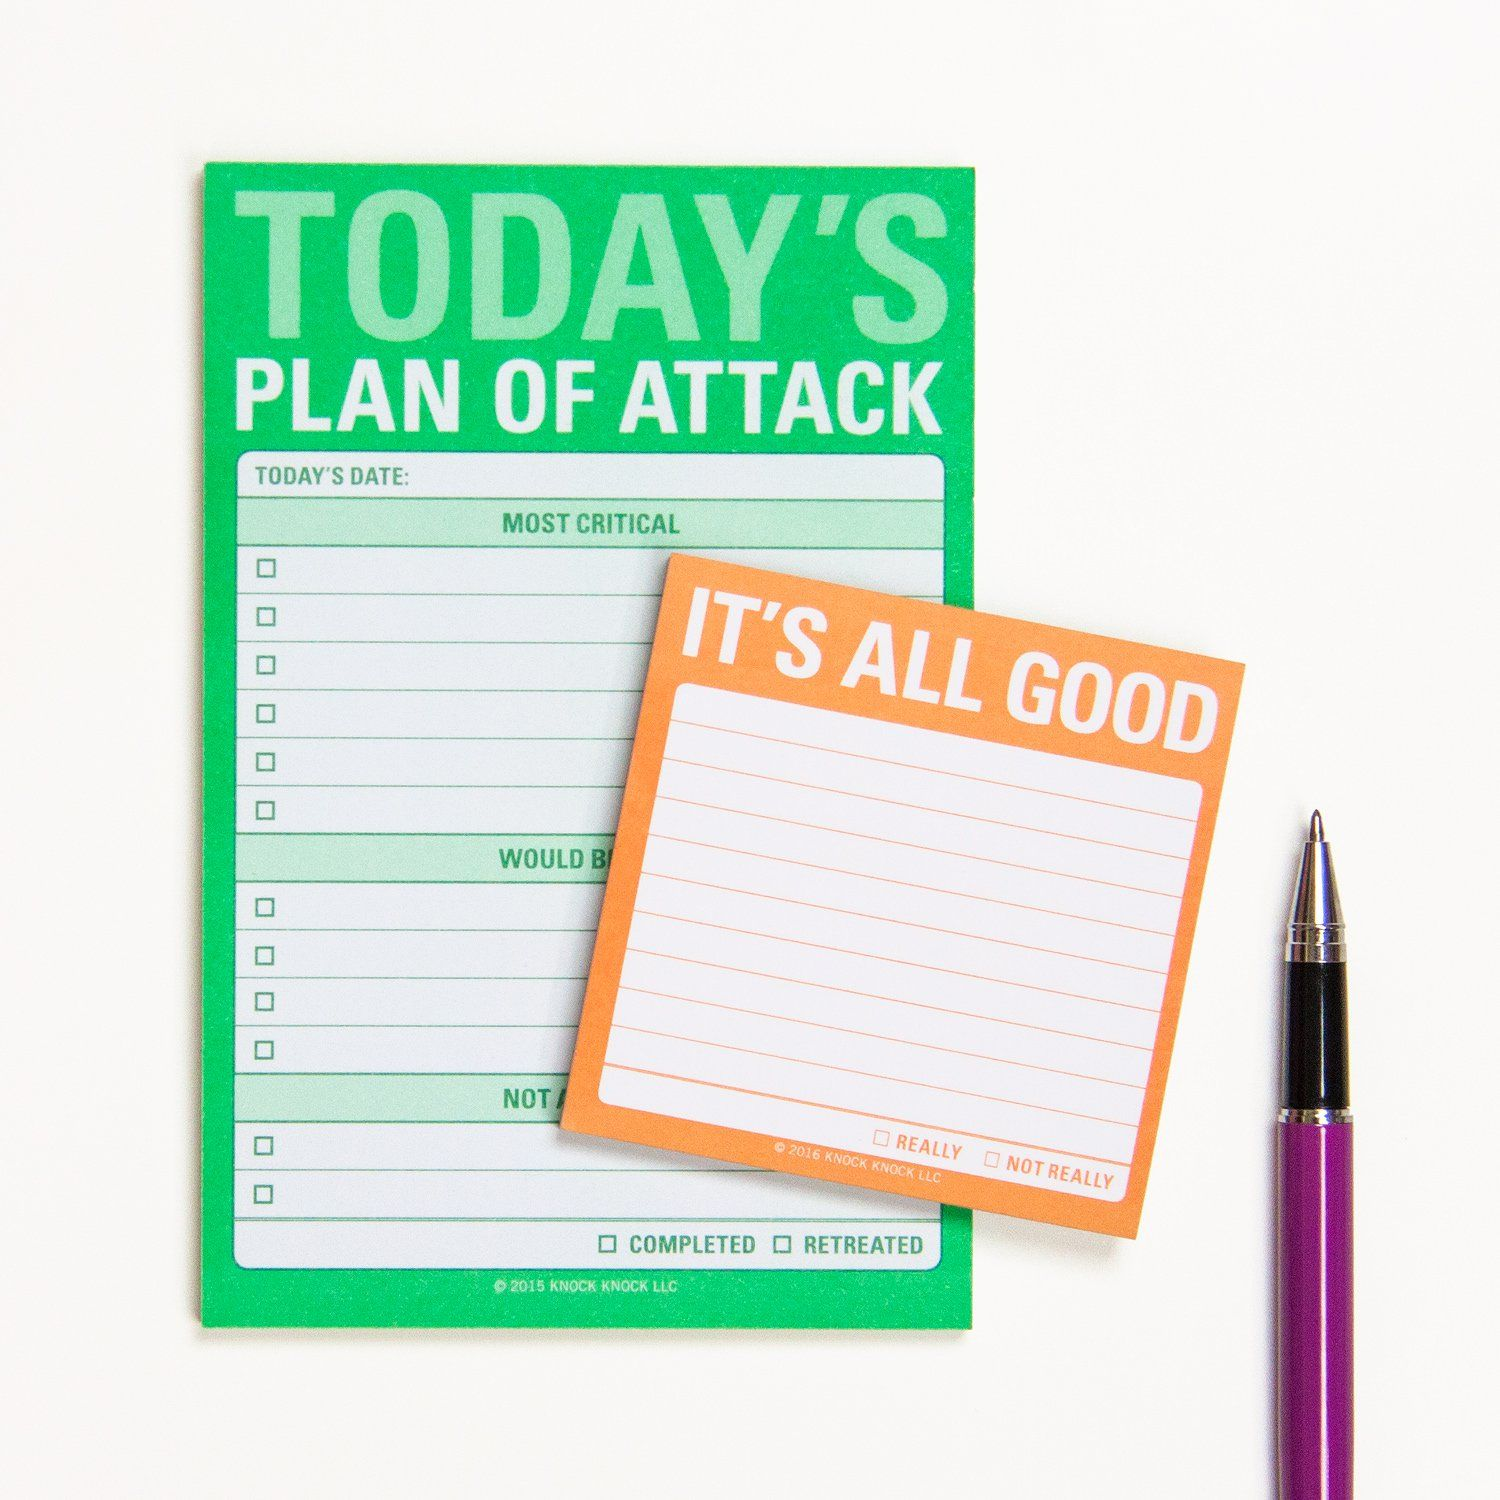 Todayus plan of attack great big sticky notes funny office knock